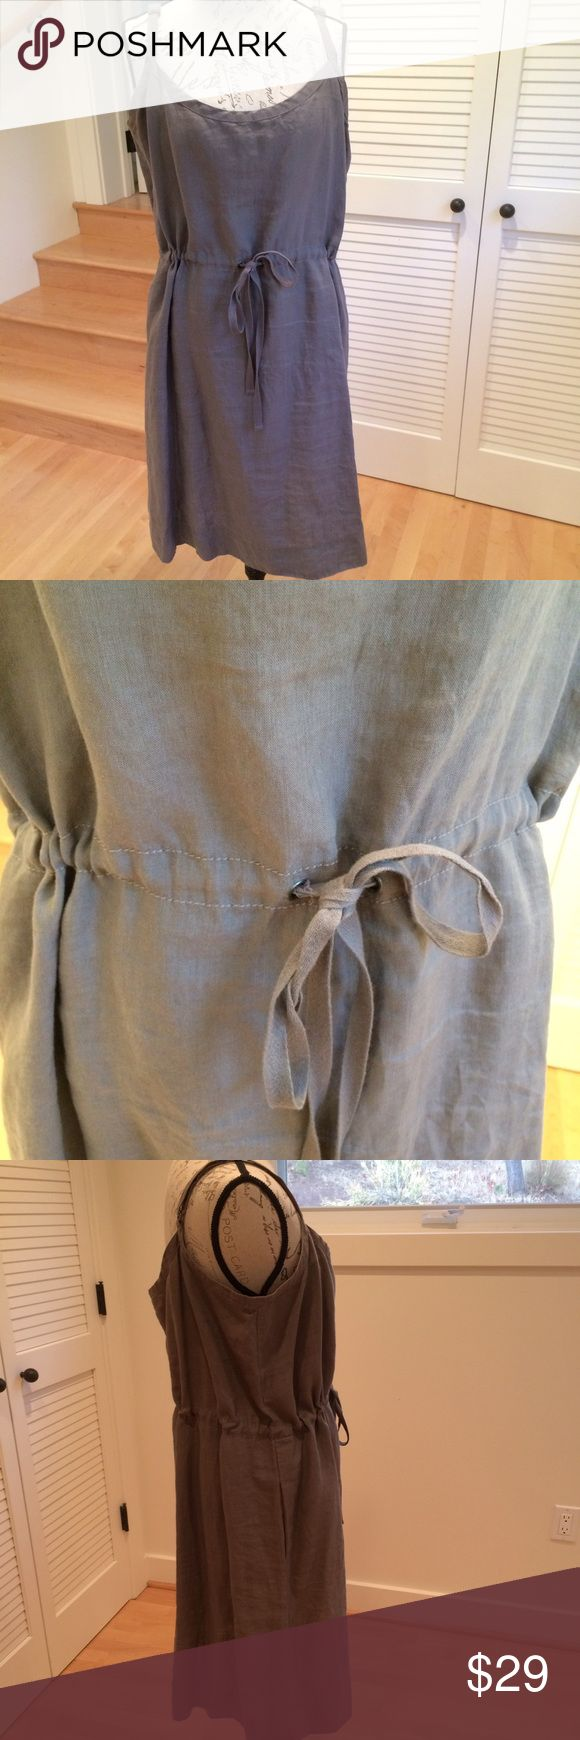 Eileen Fisher short linen dress with straps Eileen Fisher short linen dress with straps, taupe color. Straps are adjustable. Dress also has an internal belt adjustable according to the waist size. Extremely comfortable. XL but fine for L too. Gently worn. Eileen Fisher Dresses